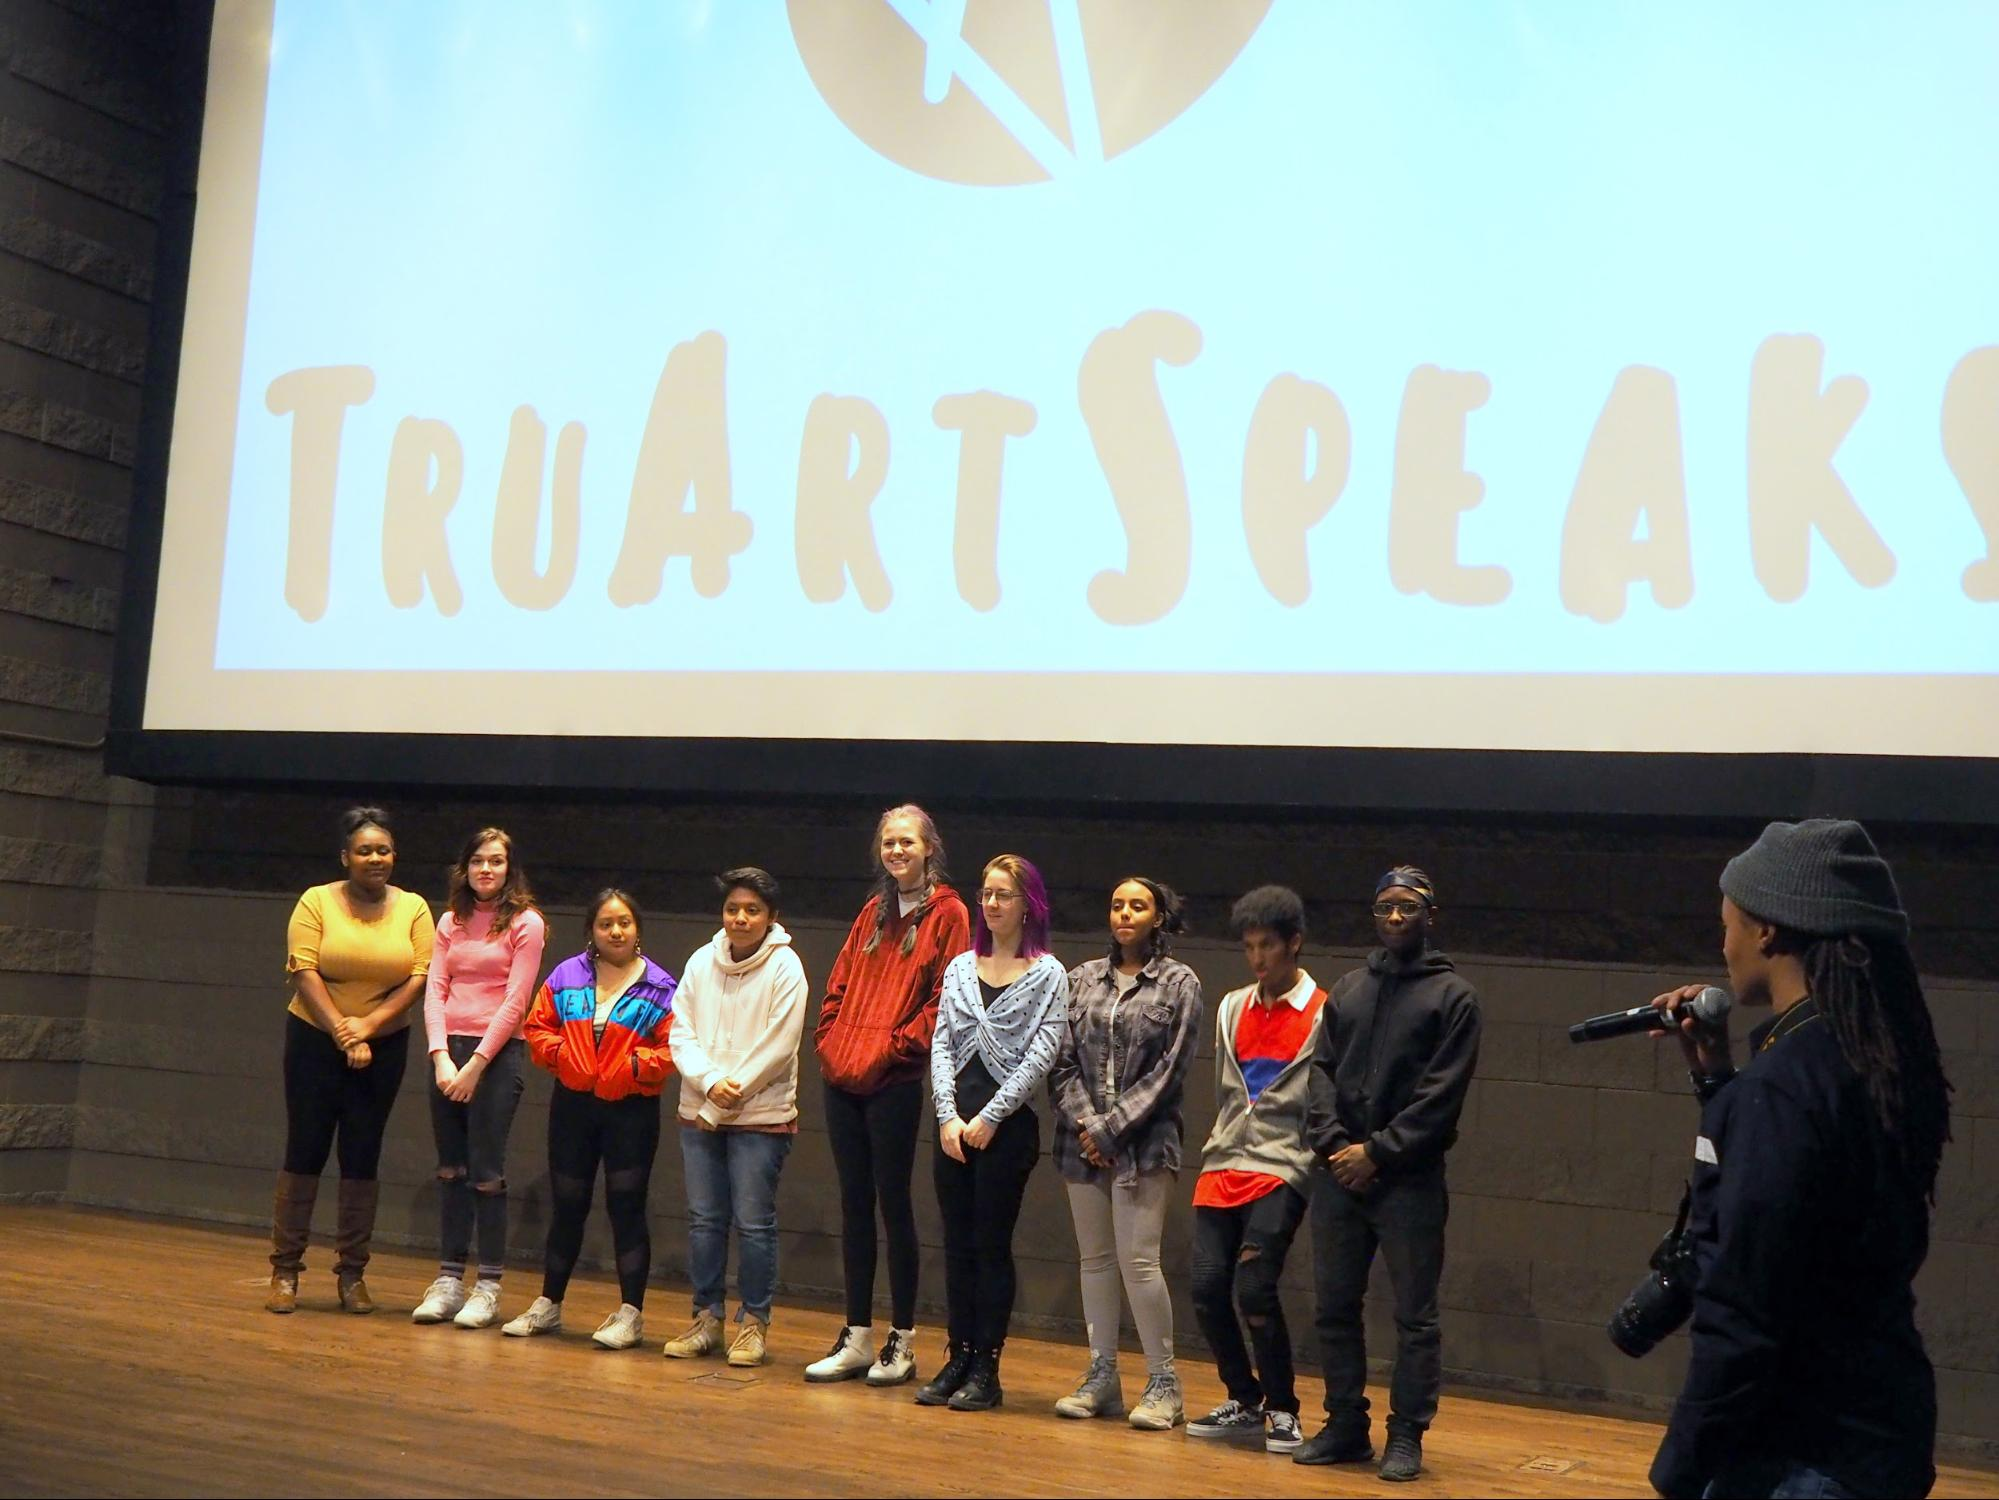 Tish Jones, right, addresses the semifinalists of the BeHeard Youth Poetry Slam competition on March 8 at Metropolitan State University. Jones is executive director of TruArtSpeaks, an organization dedicated to empowering youth voices through hip-hop culture, education, literacy and outreach. The nonprofit organizes the annual competition for high school students from around the Twin Cities region. Students performed original poems and were assessed by a panel of judges. The poets who advanced at this stage went on to compete in the finals on March 30 at Steppingstone Theatre in St. Paul. (April Carlson / The Metropolitan)